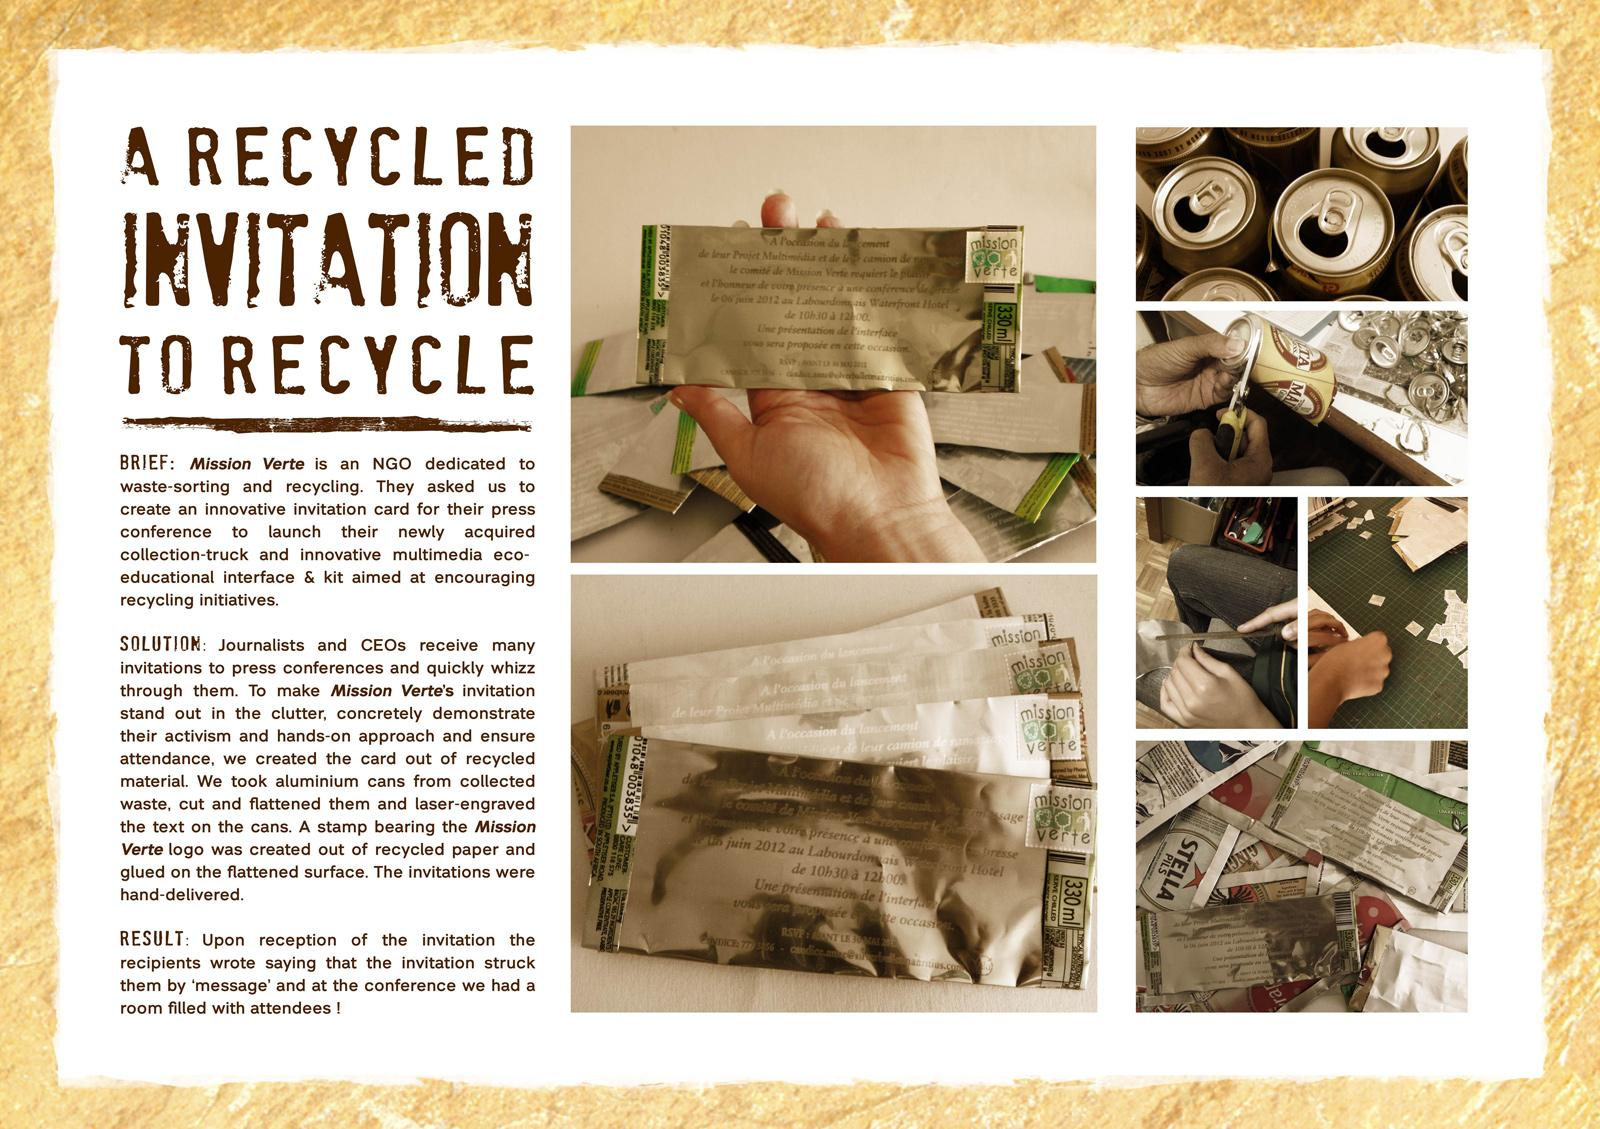 Mission Verte Direct Ad -  Recycled Invitation